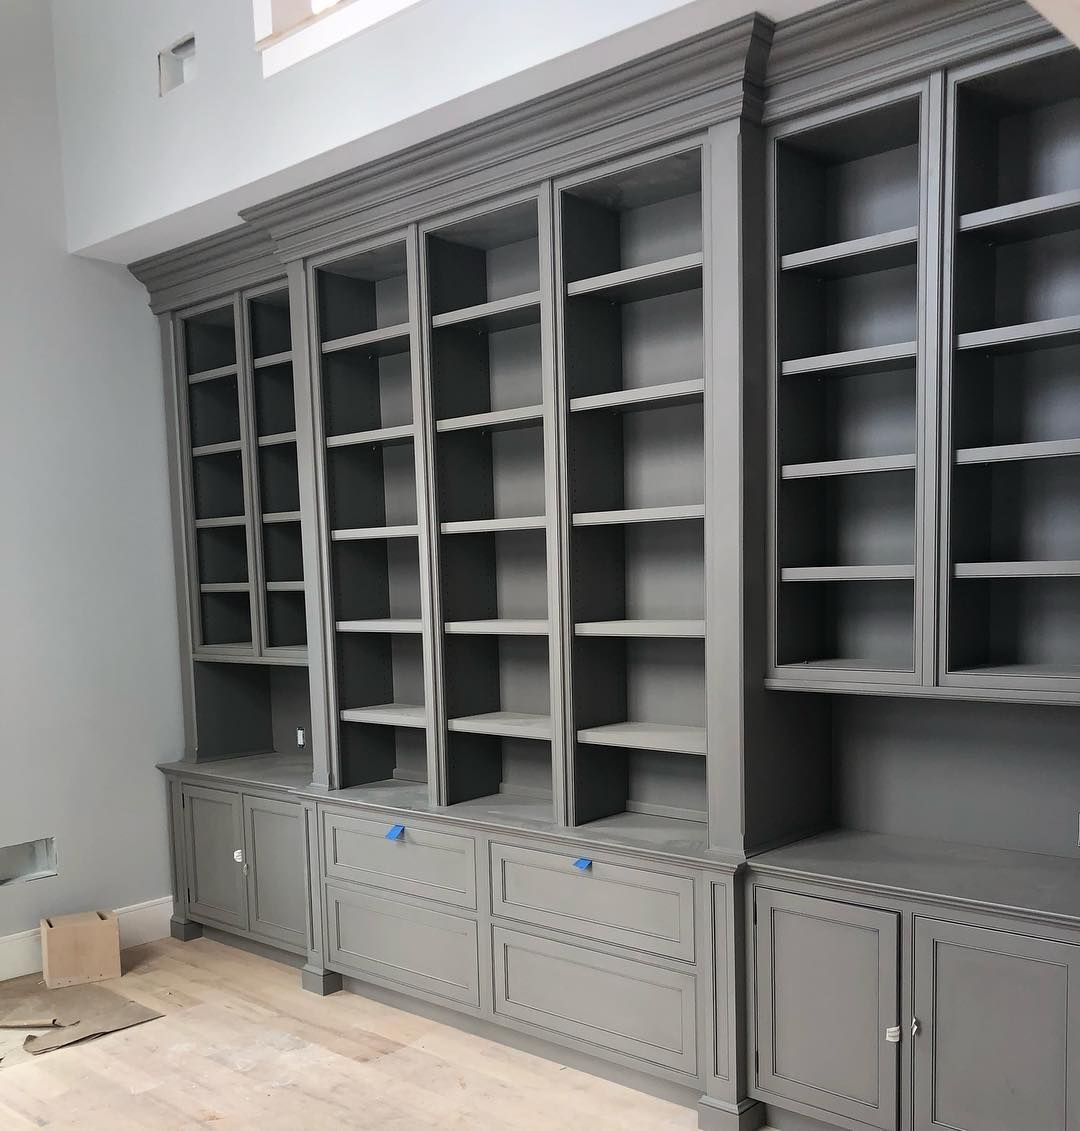 cabinetry paint color is benjamin moore graystone cabinet paint rh pinterest com